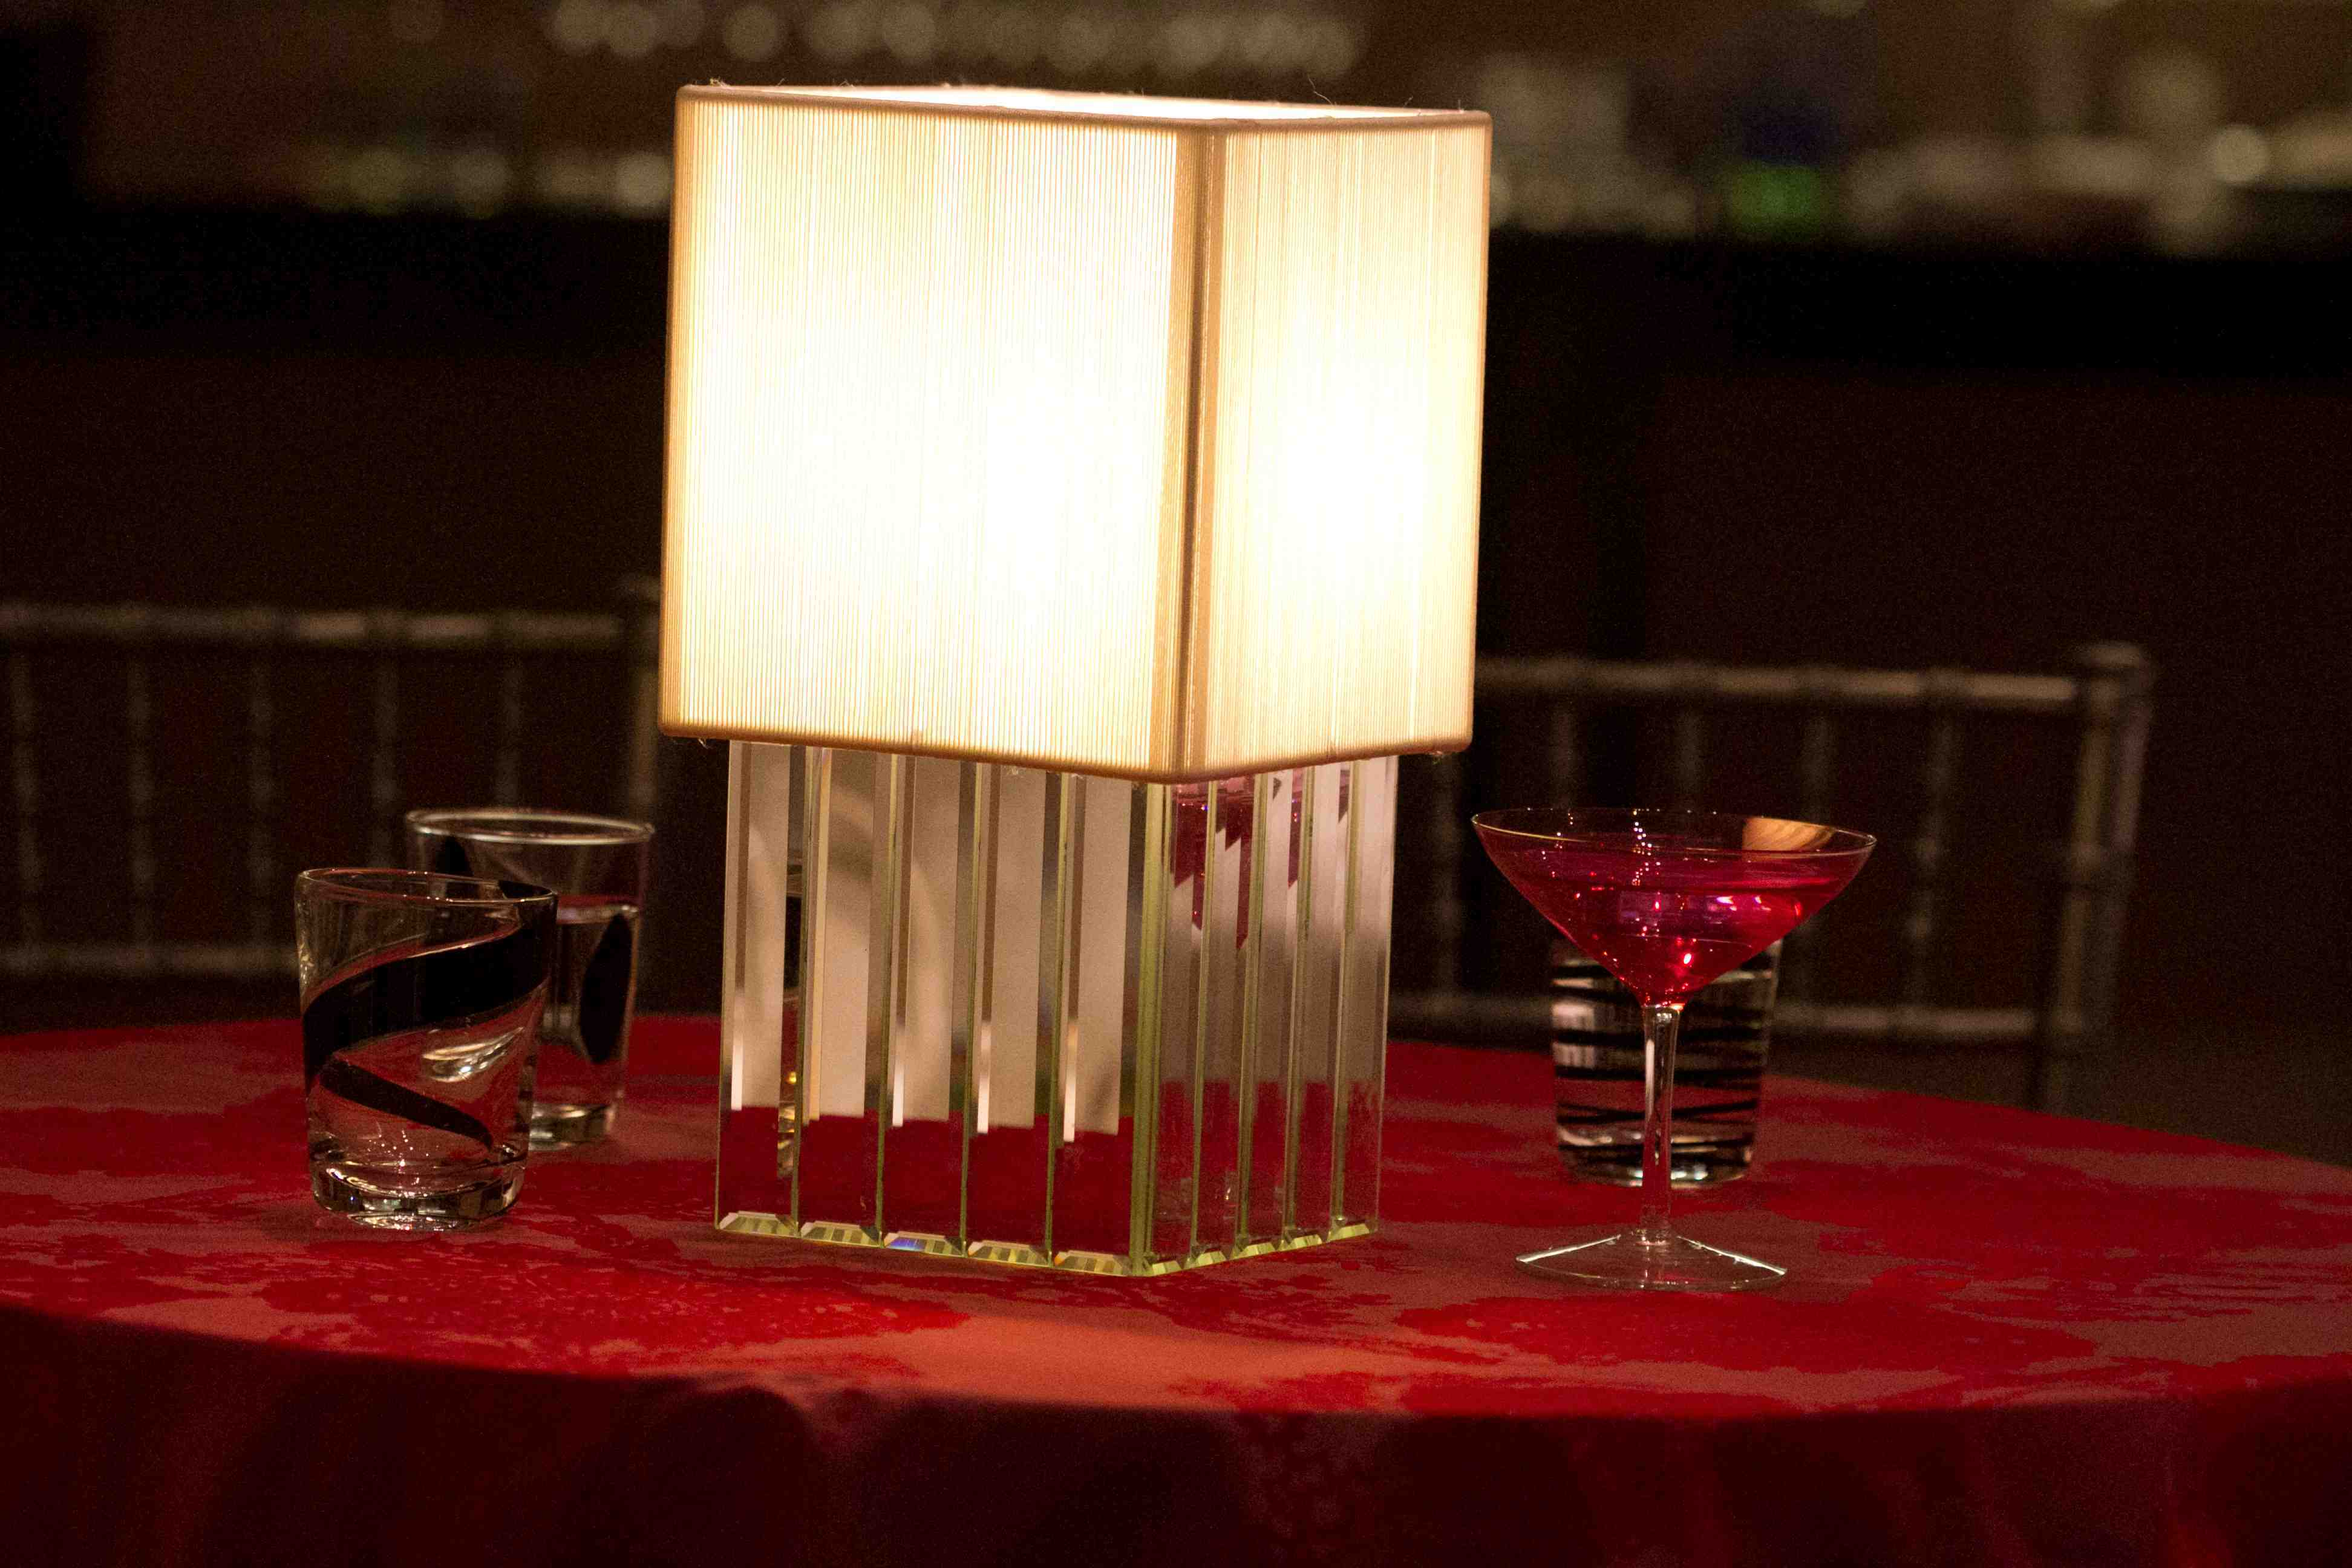 IPower Cordless Lighting Introduce A New Cabaret Lamp IPower - Cabaret table lamps